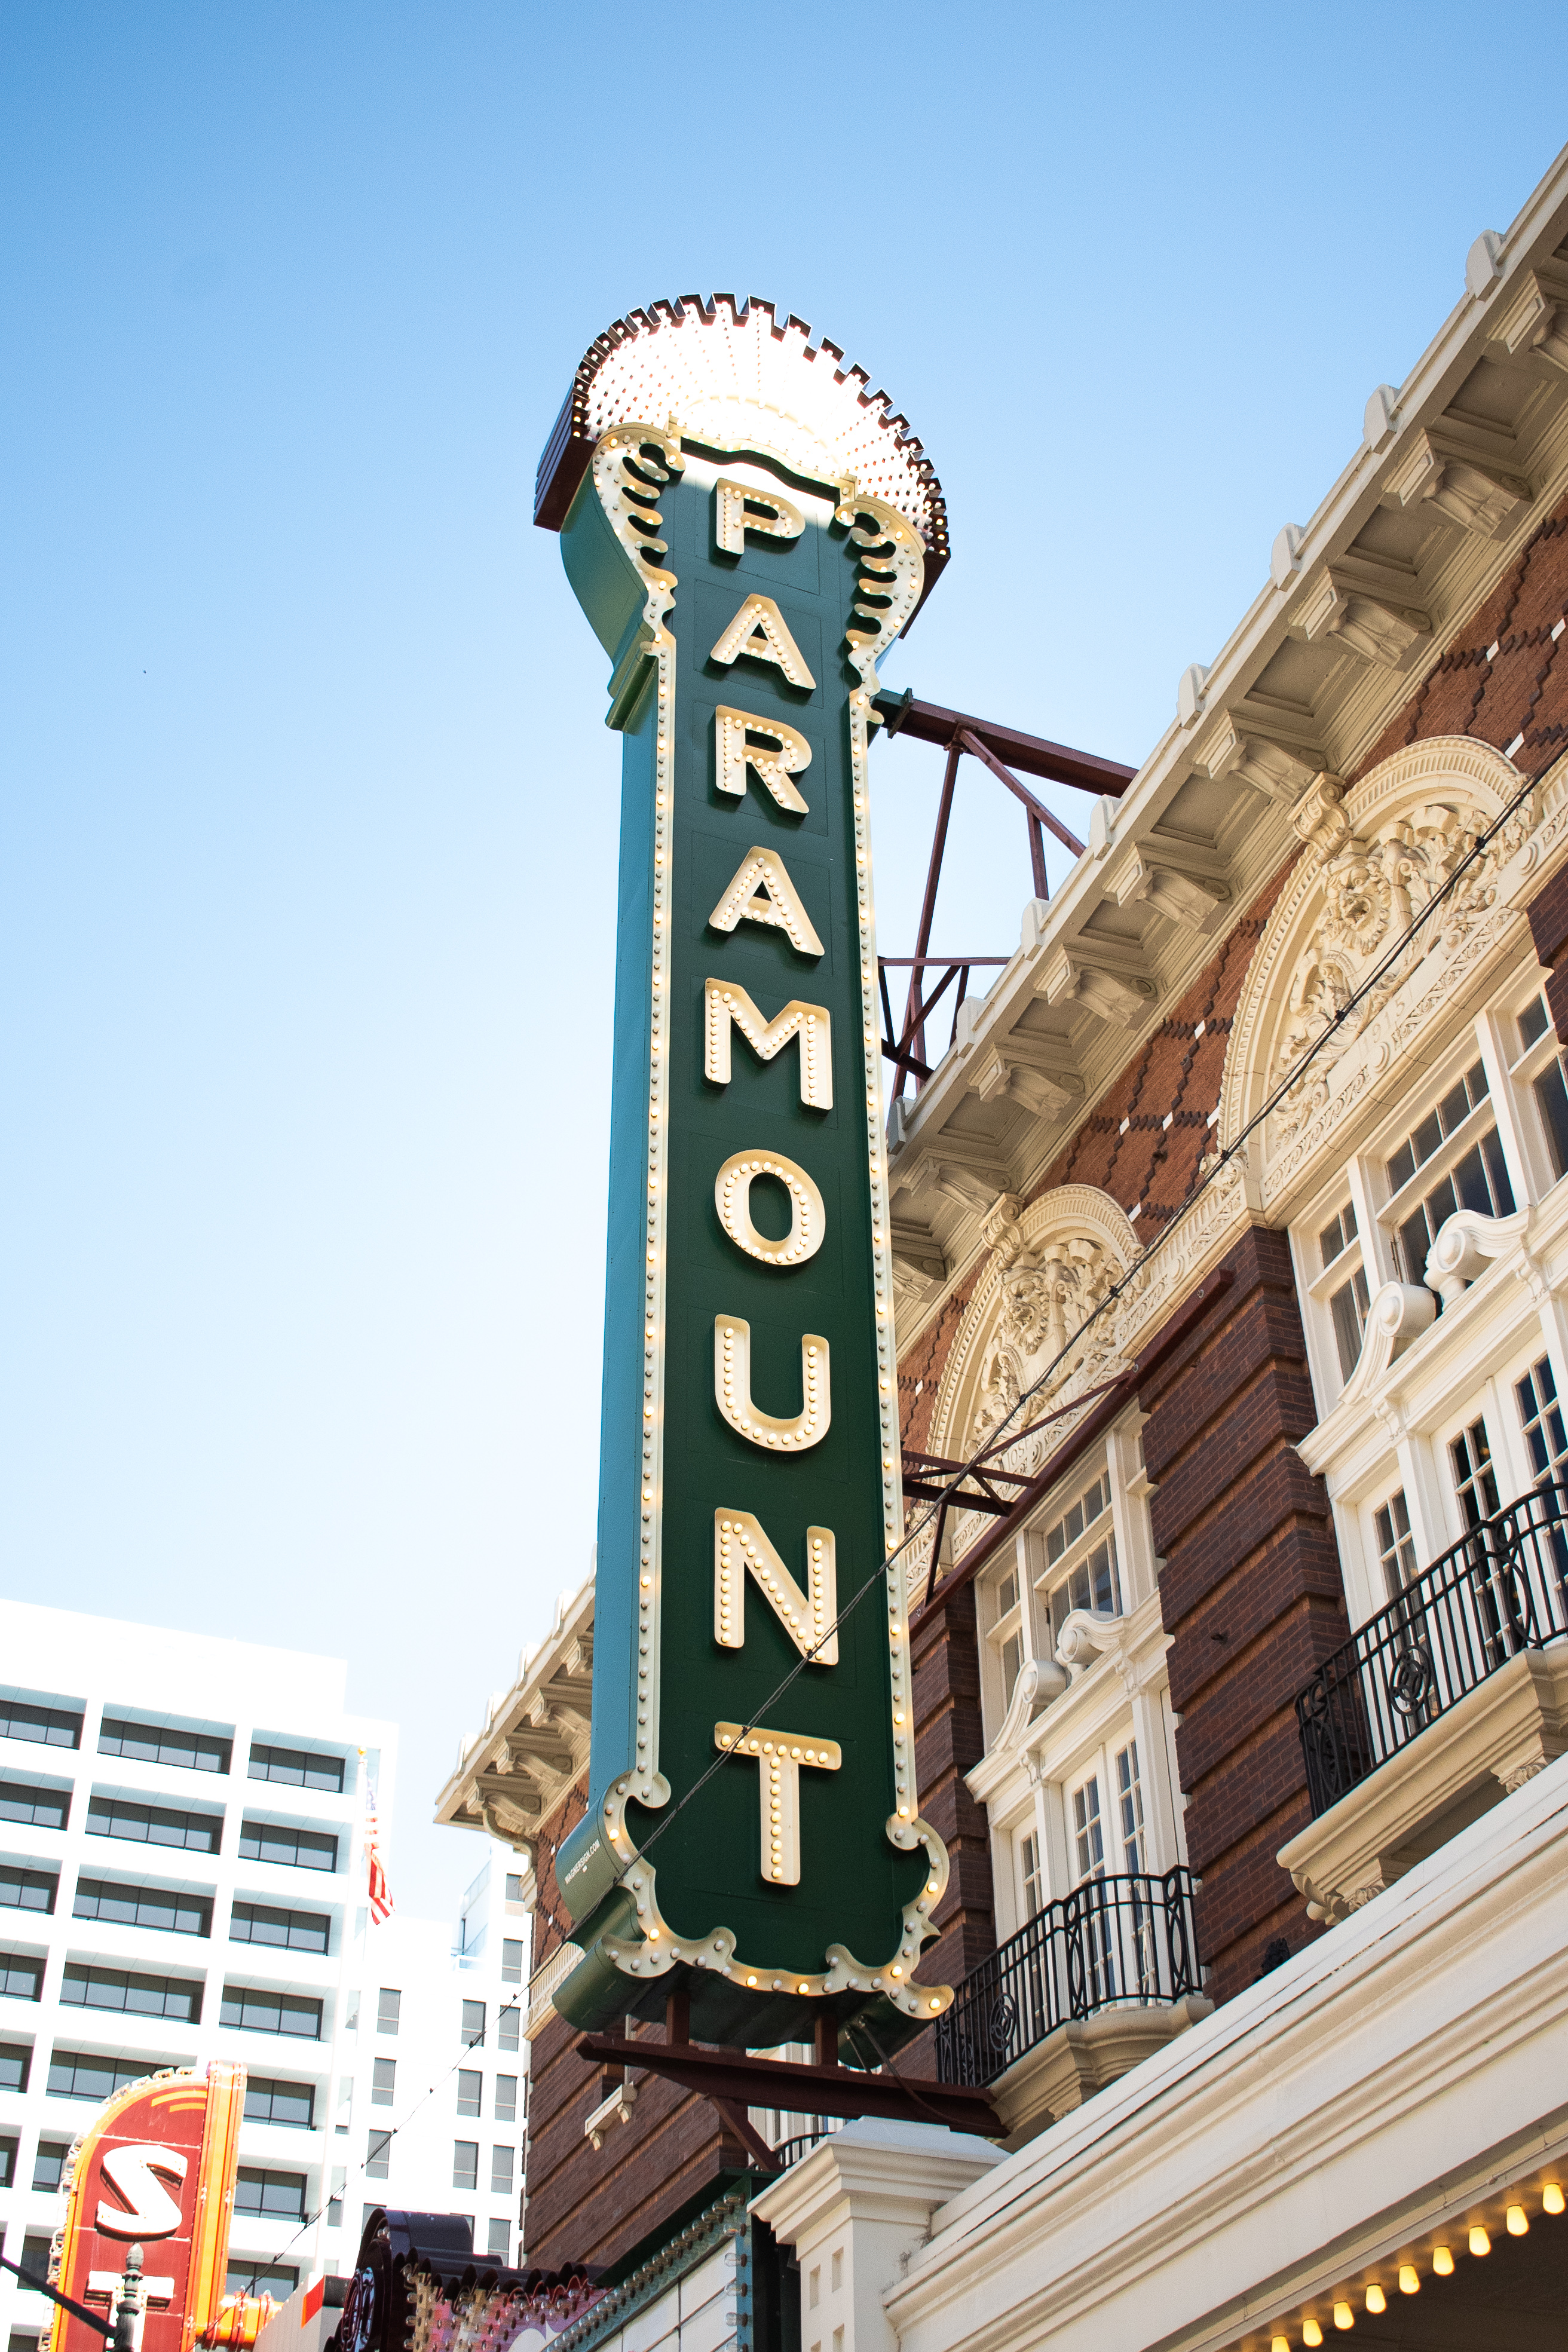 Green sign that is vertical has the word Paramount spelled out on it. The sign is attached to a older building.